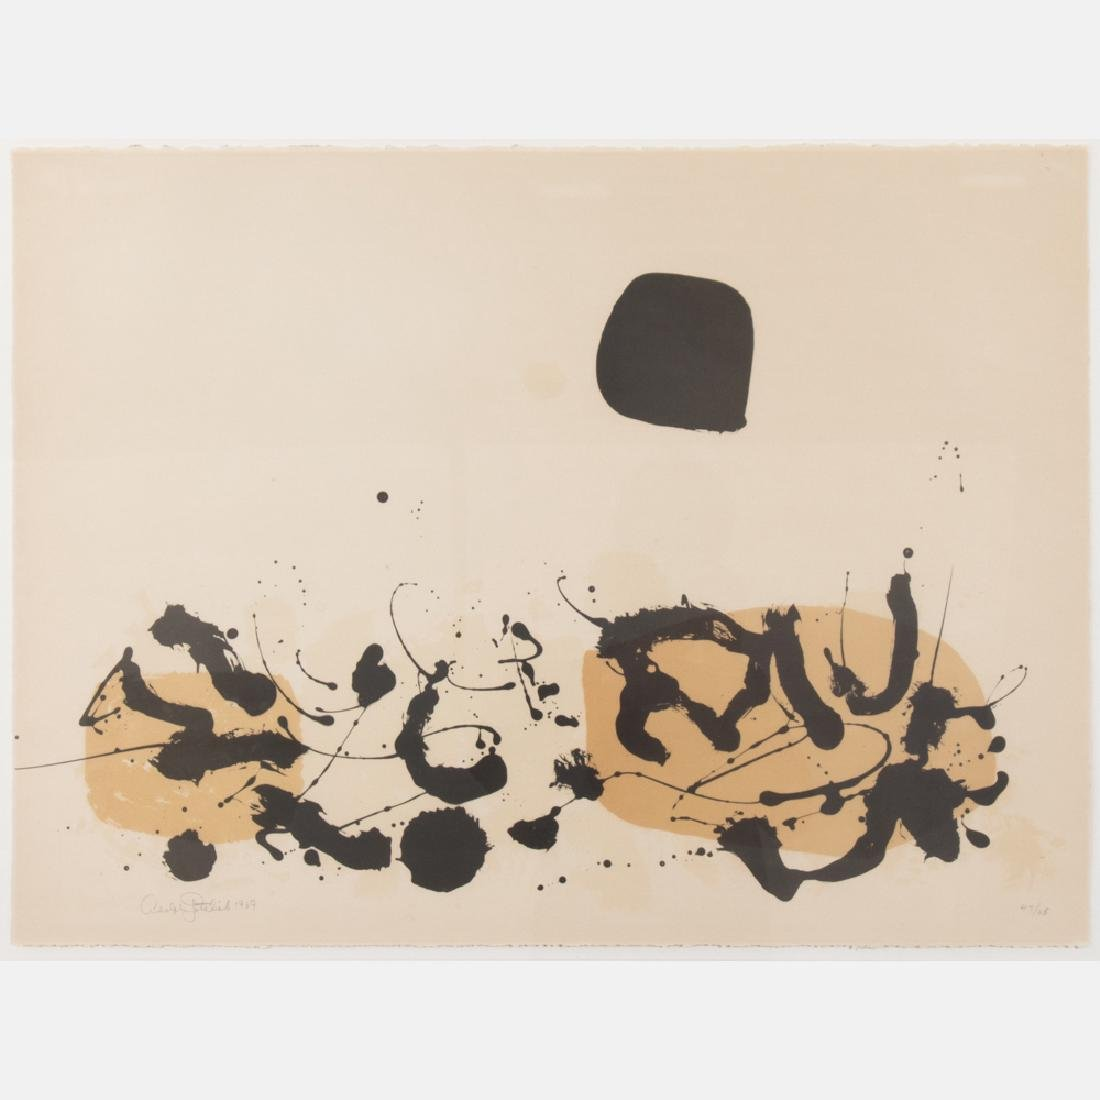 Adolph Gottlieb (1903-1974) Germination Li, 1969,